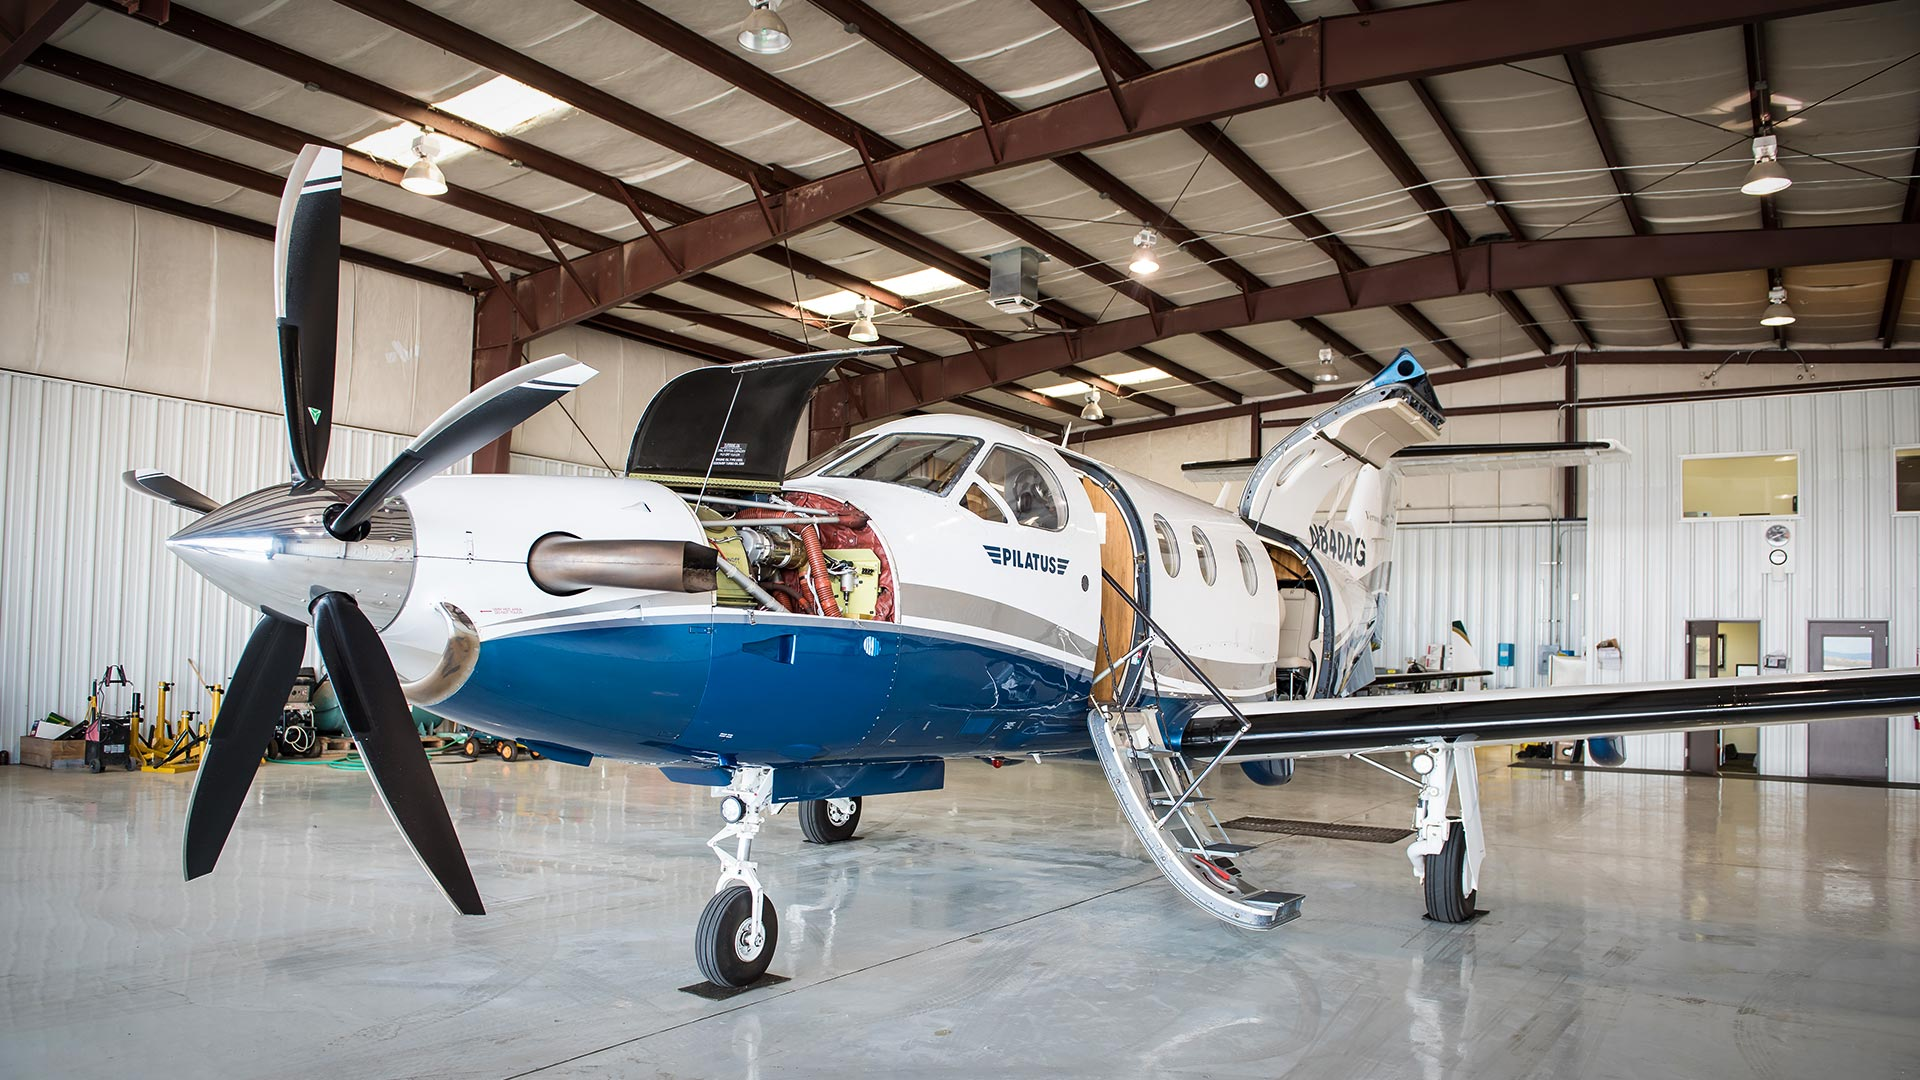 Safety Comes First for Vernon Aviation